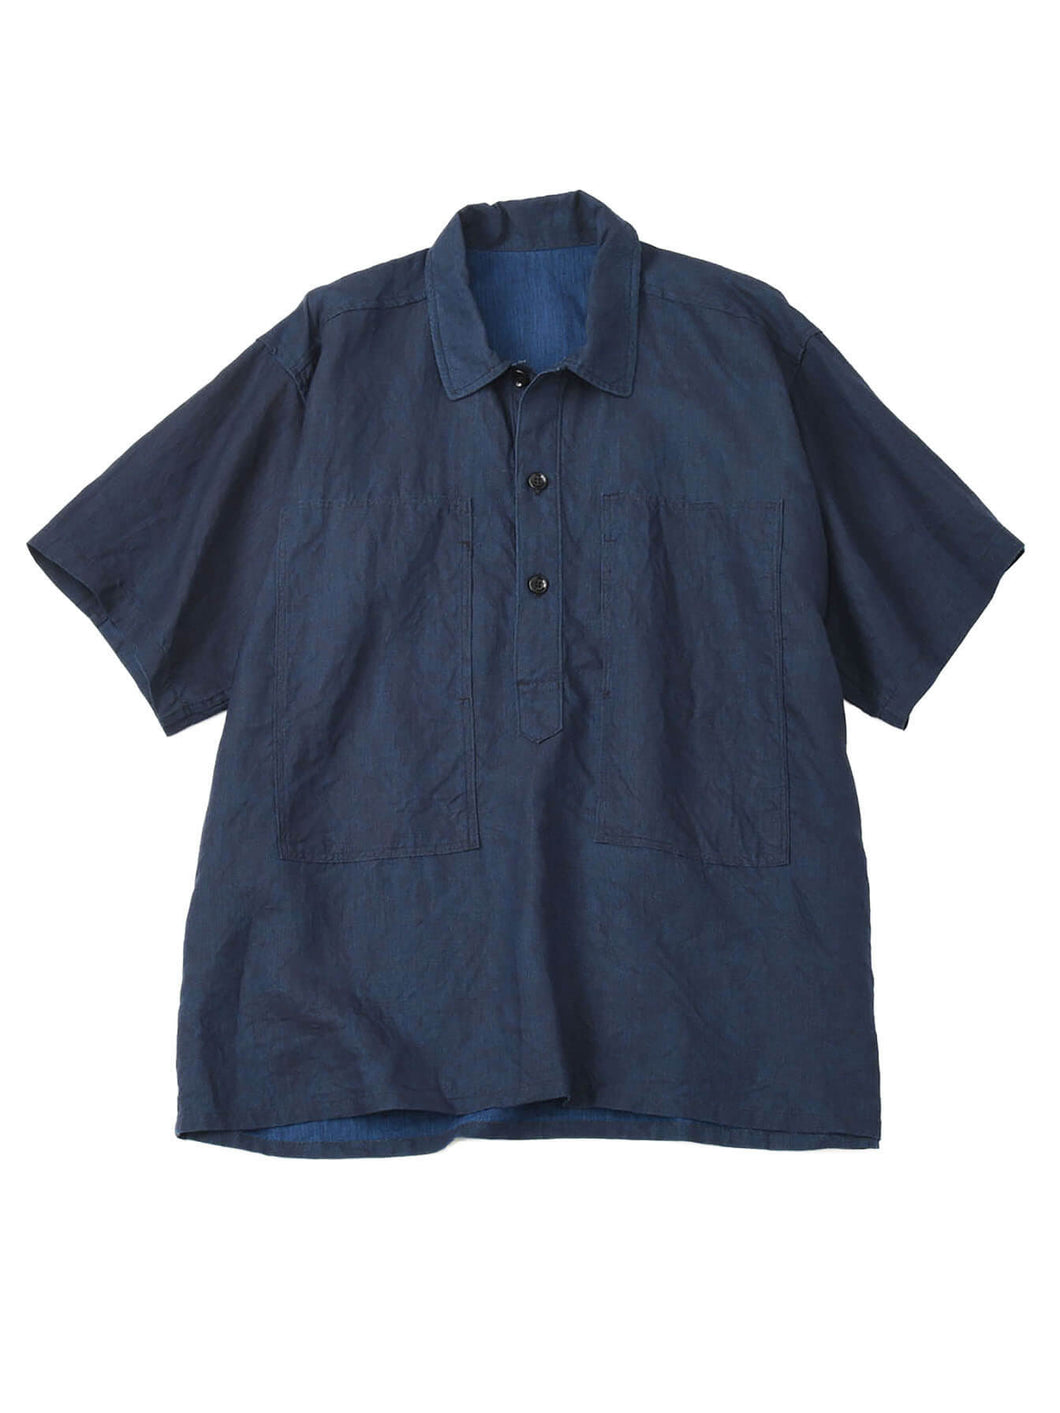 Indigo Linen Over Shirt in indigo